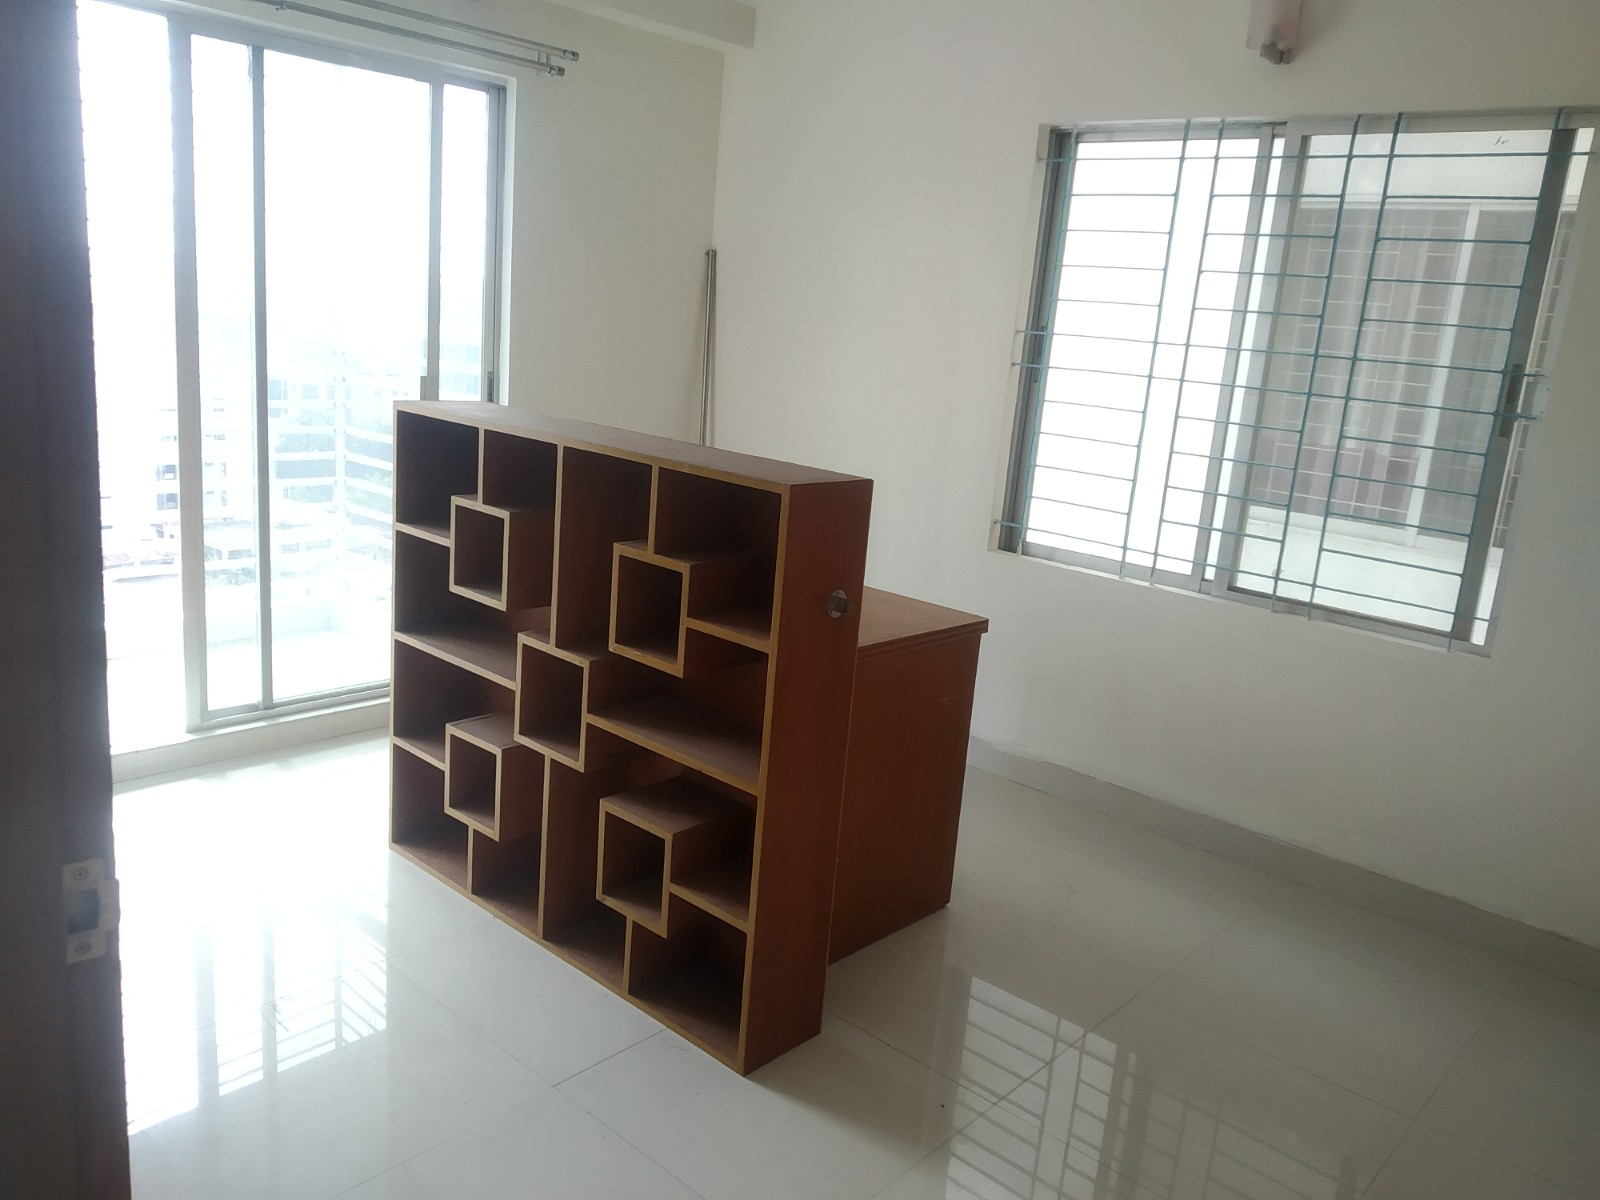 2810-sft-apartment-for-sale-at-dhanmondi-14th-floor-057037